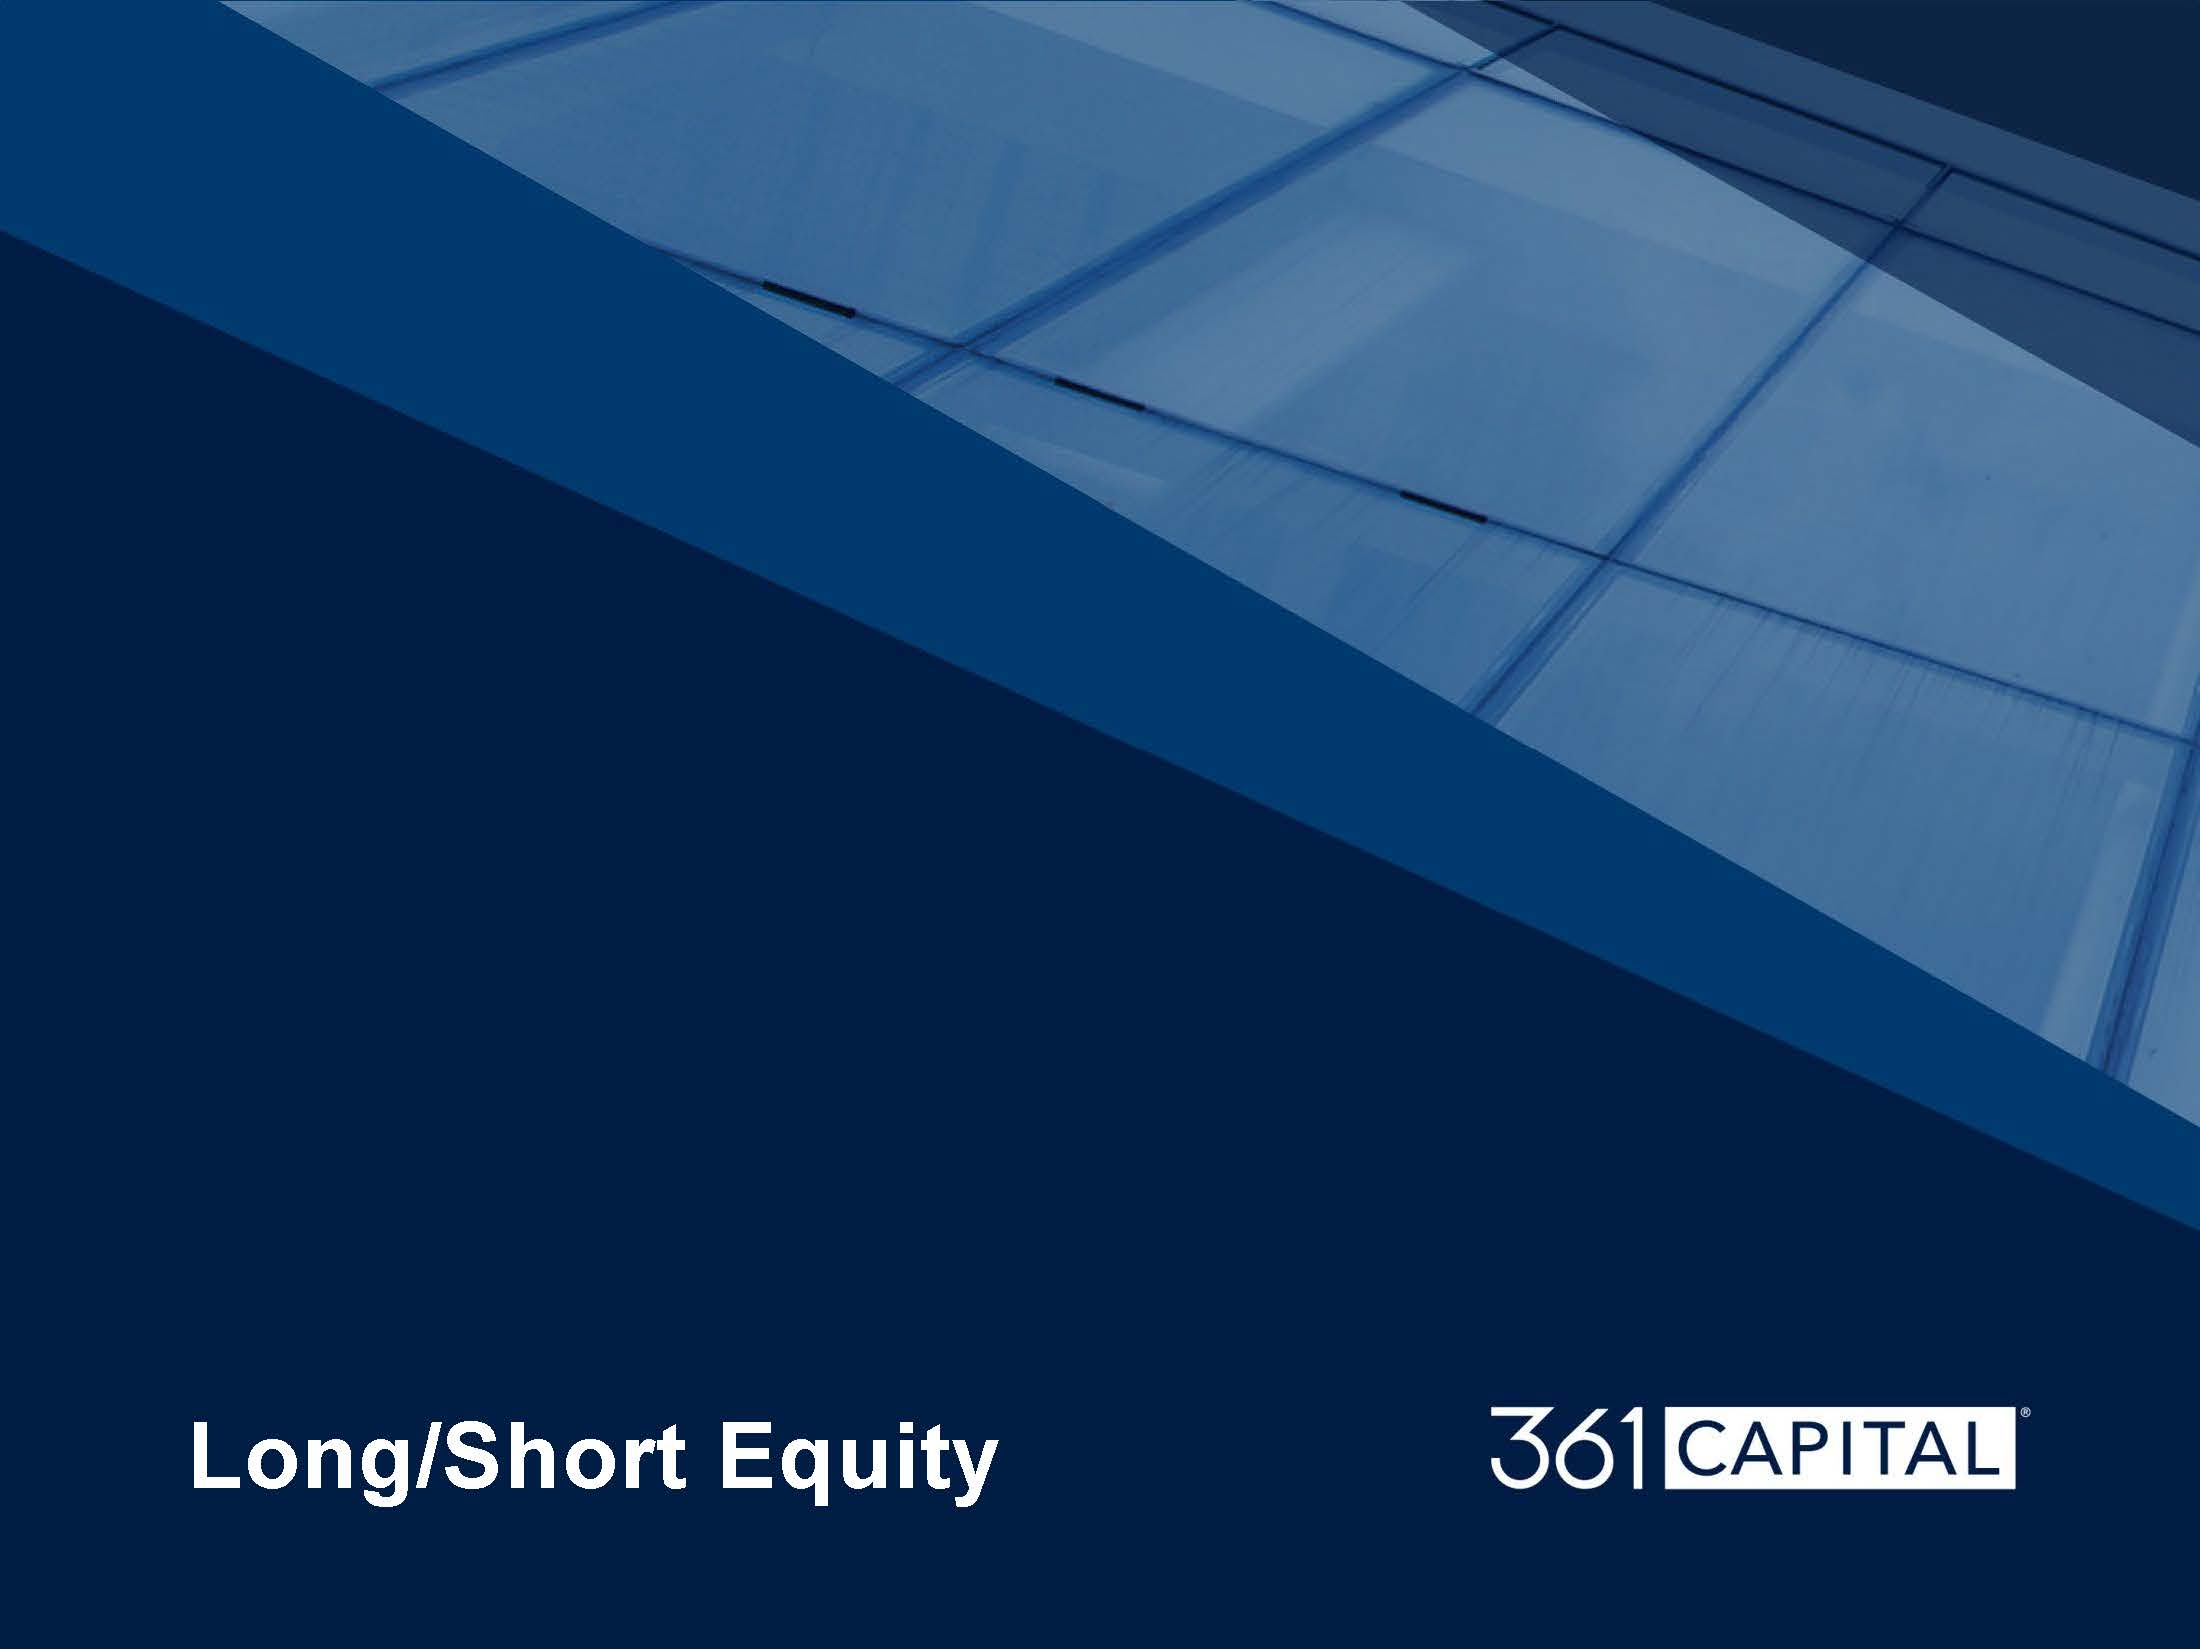 Long/Short Equity Intro Page